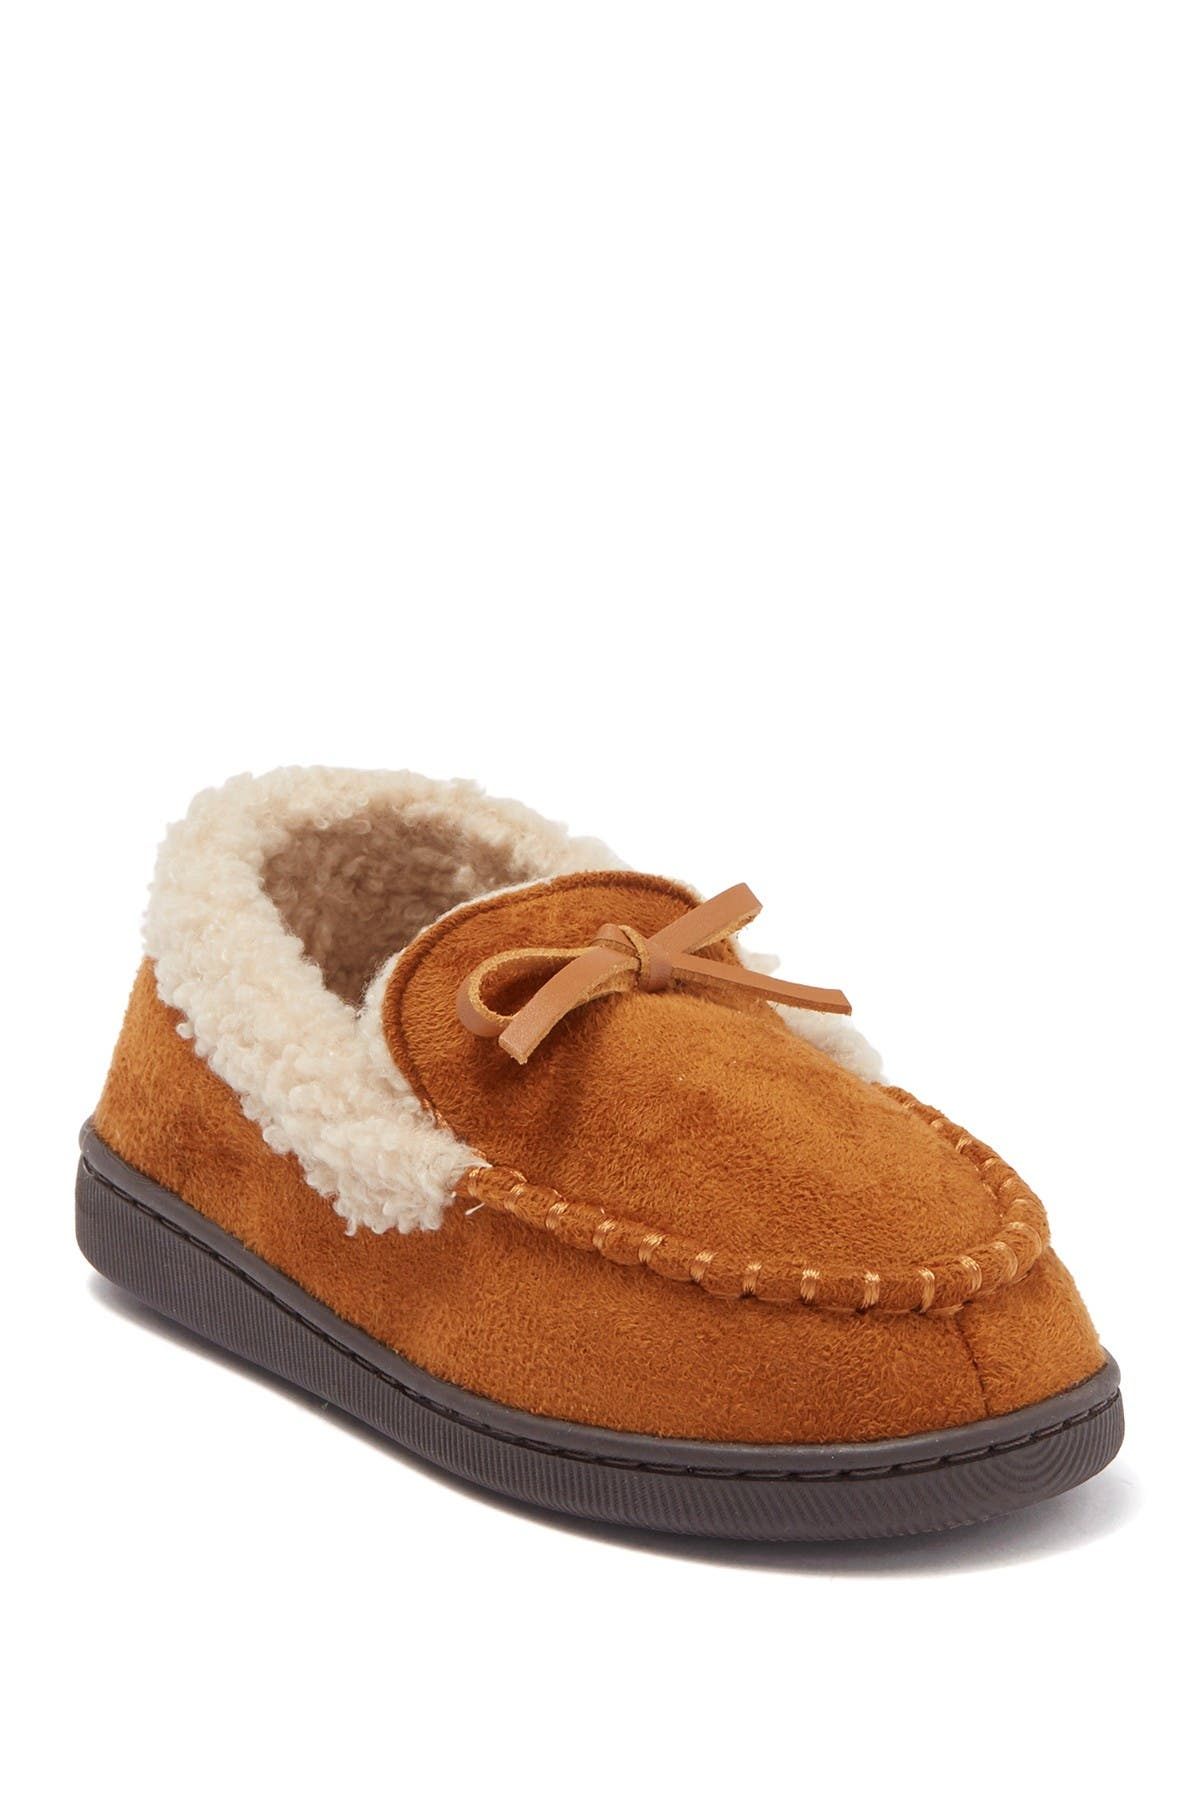 Image of Dockers Suede Moccasin